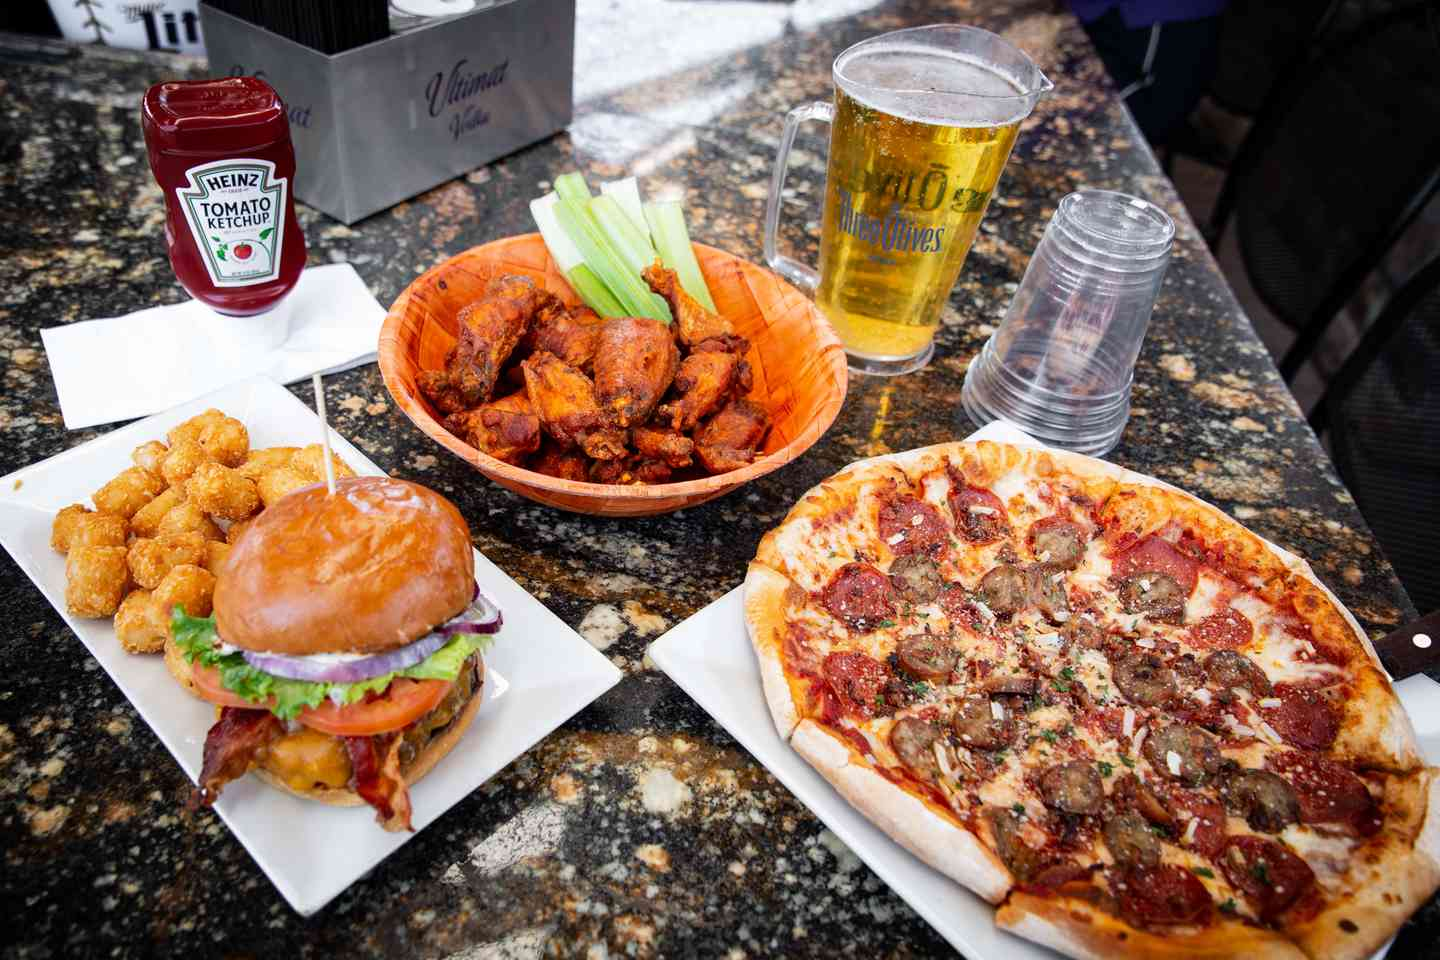 burger, wings, and pizza